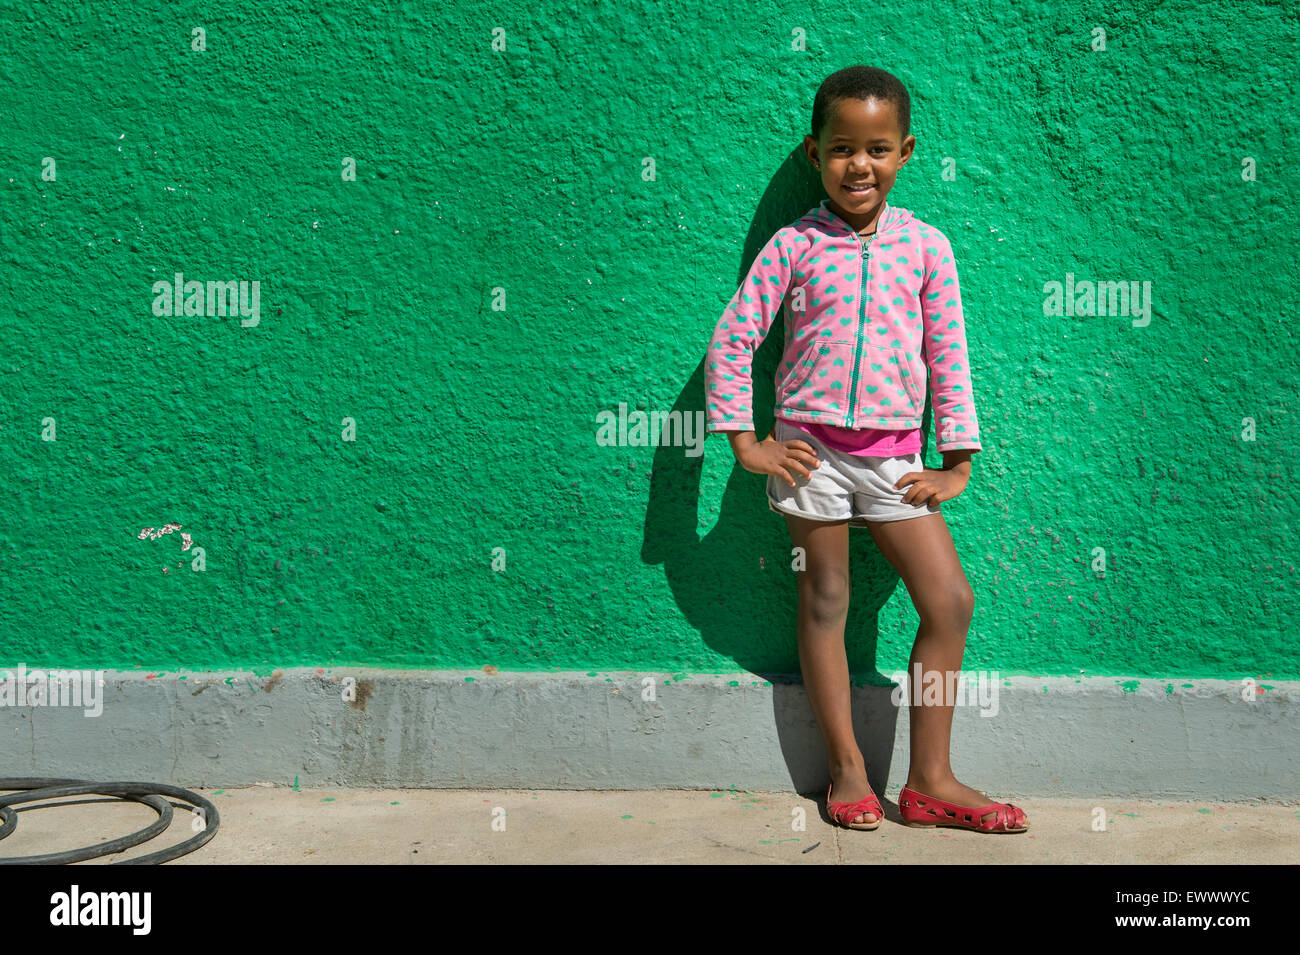 Namibia - Young African girl standing in front of bright green wall. - Stock Image